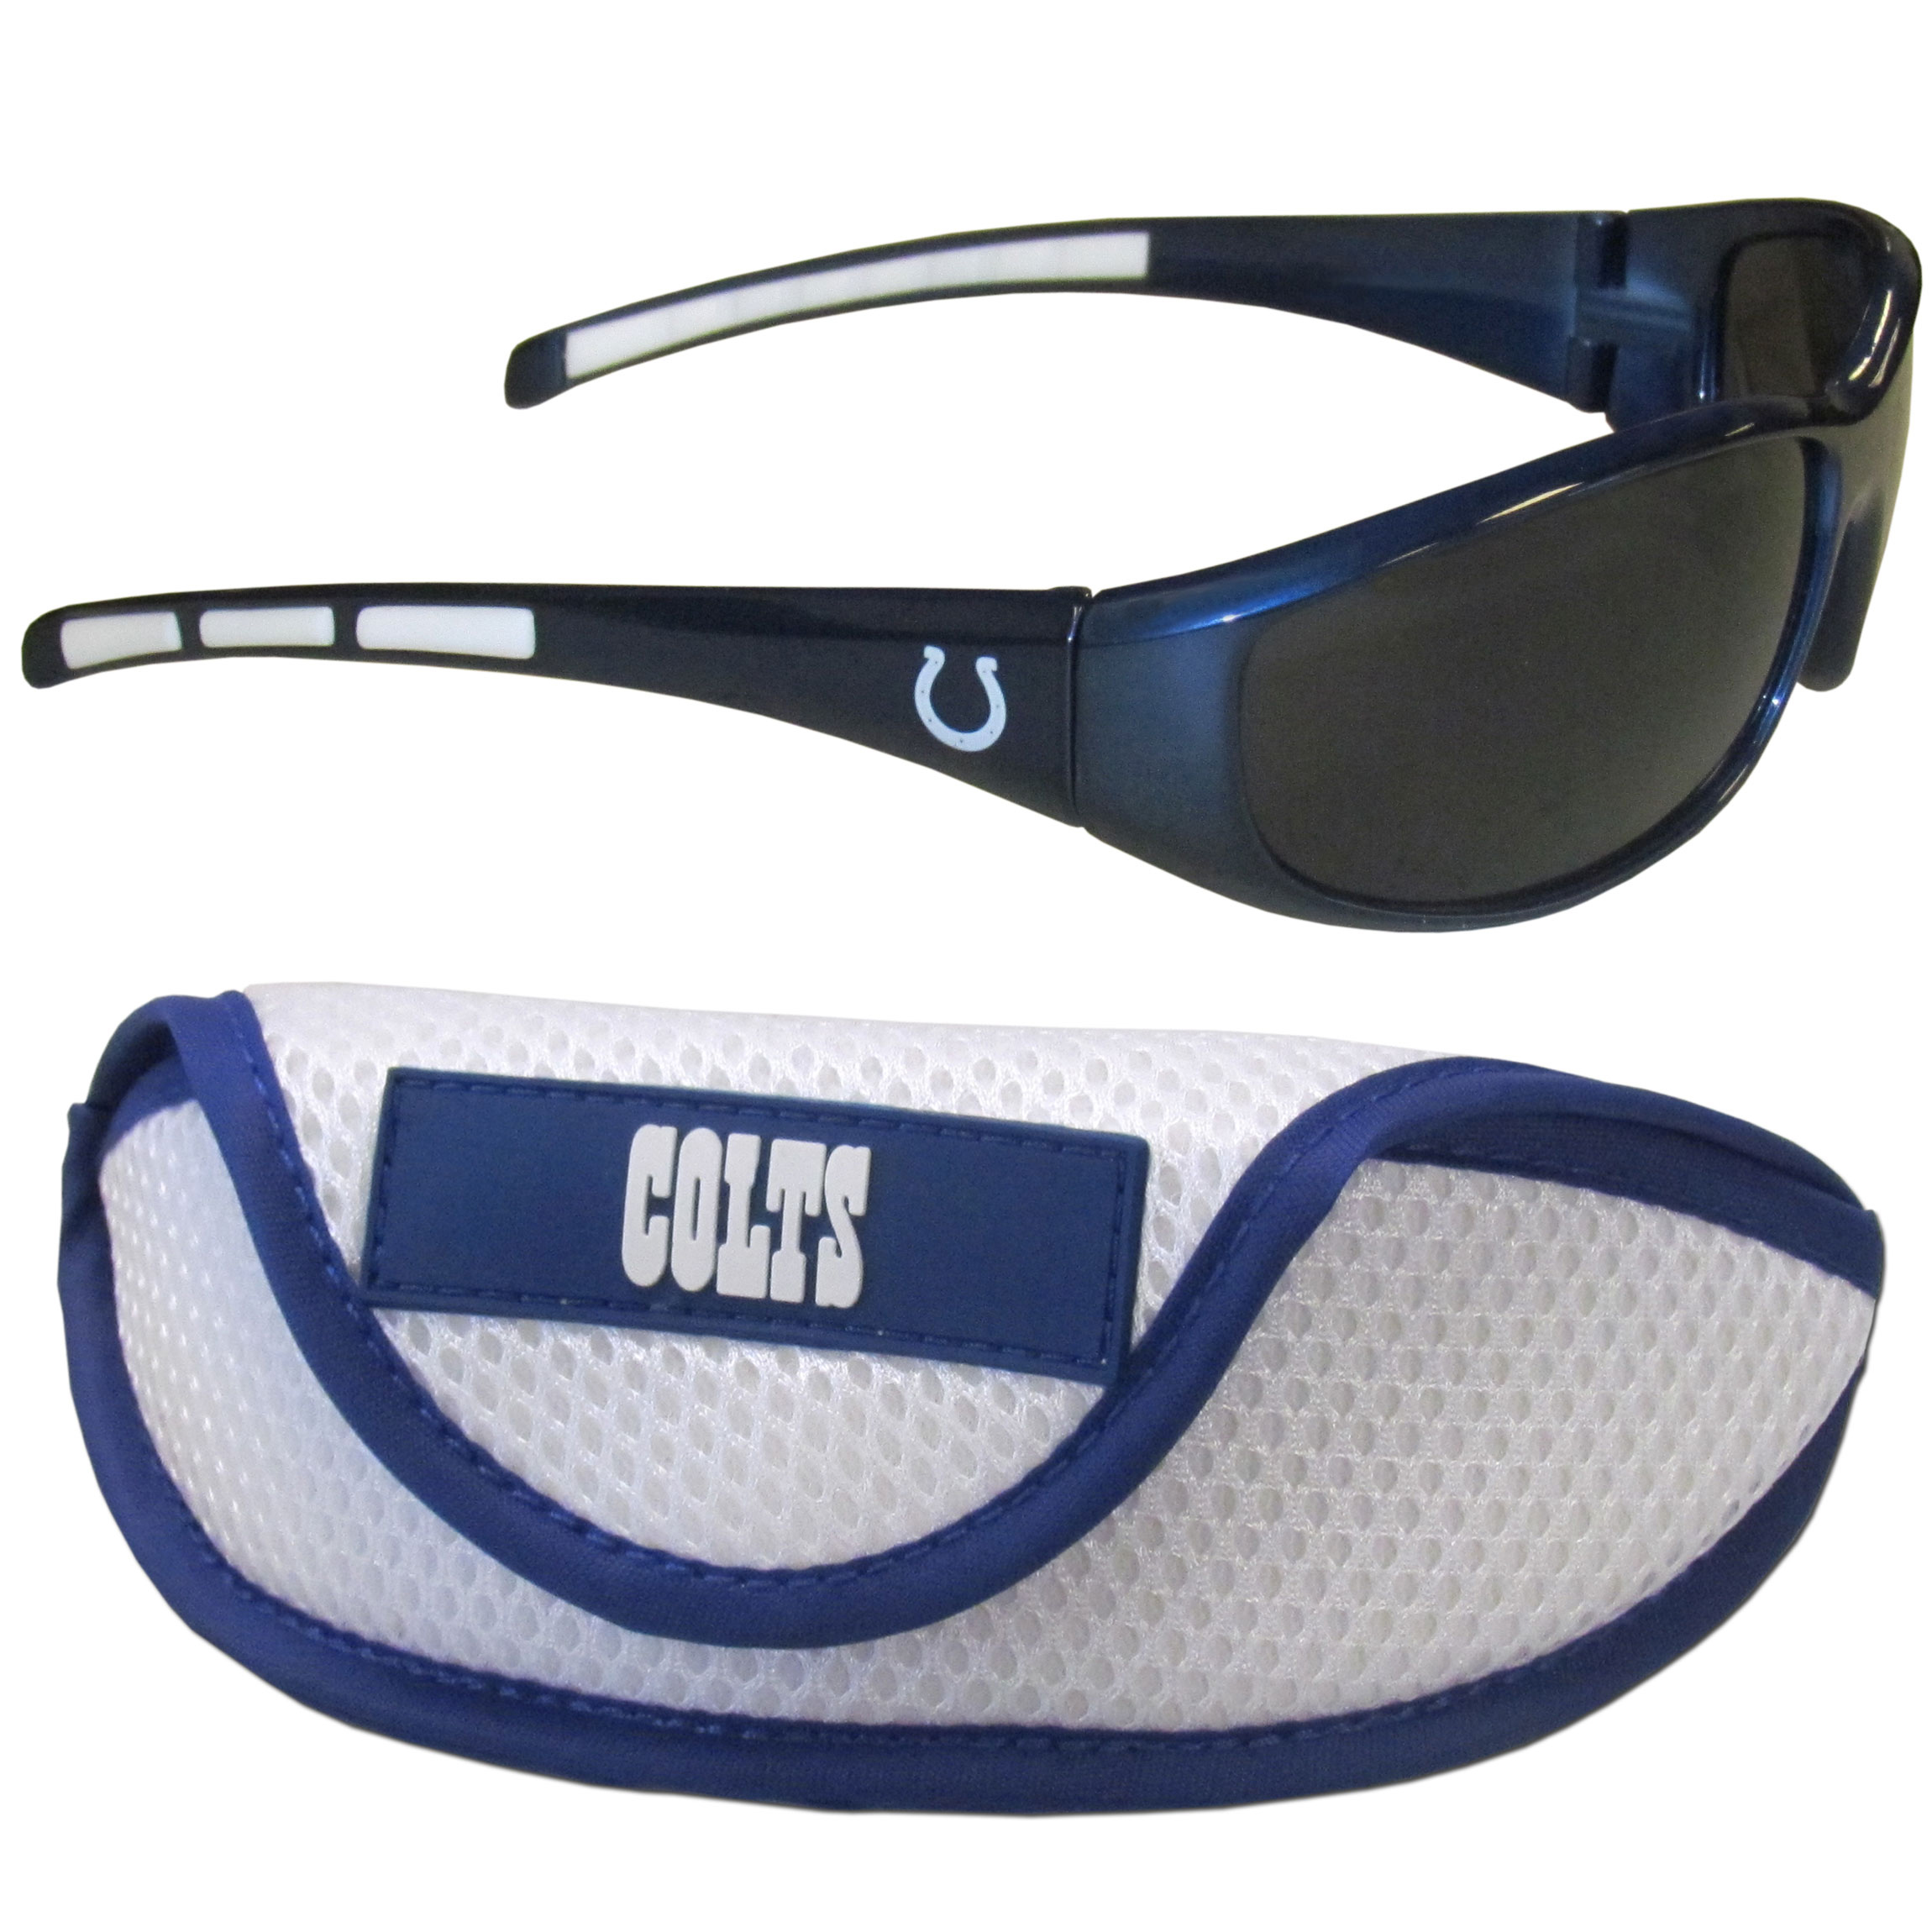 Indianapolis Colts Wrap Sunglass and Case Set - This great set includes a high quality pair of Indianapolis Colts wrap sunglasses and sport carrying case.